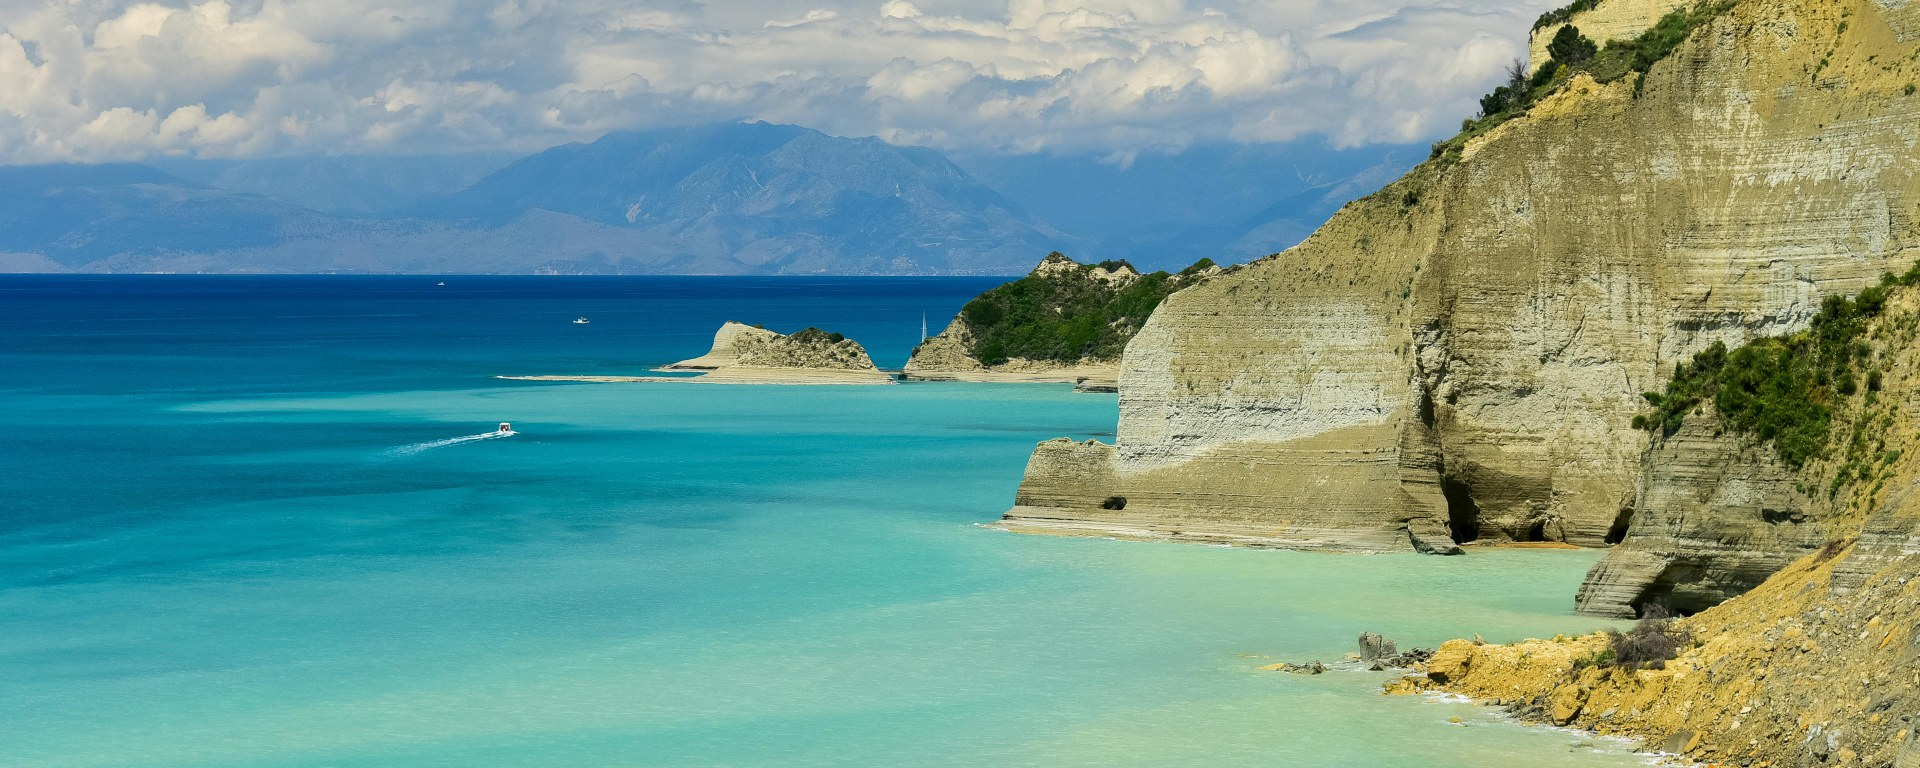 corfu beach and sea view in greece